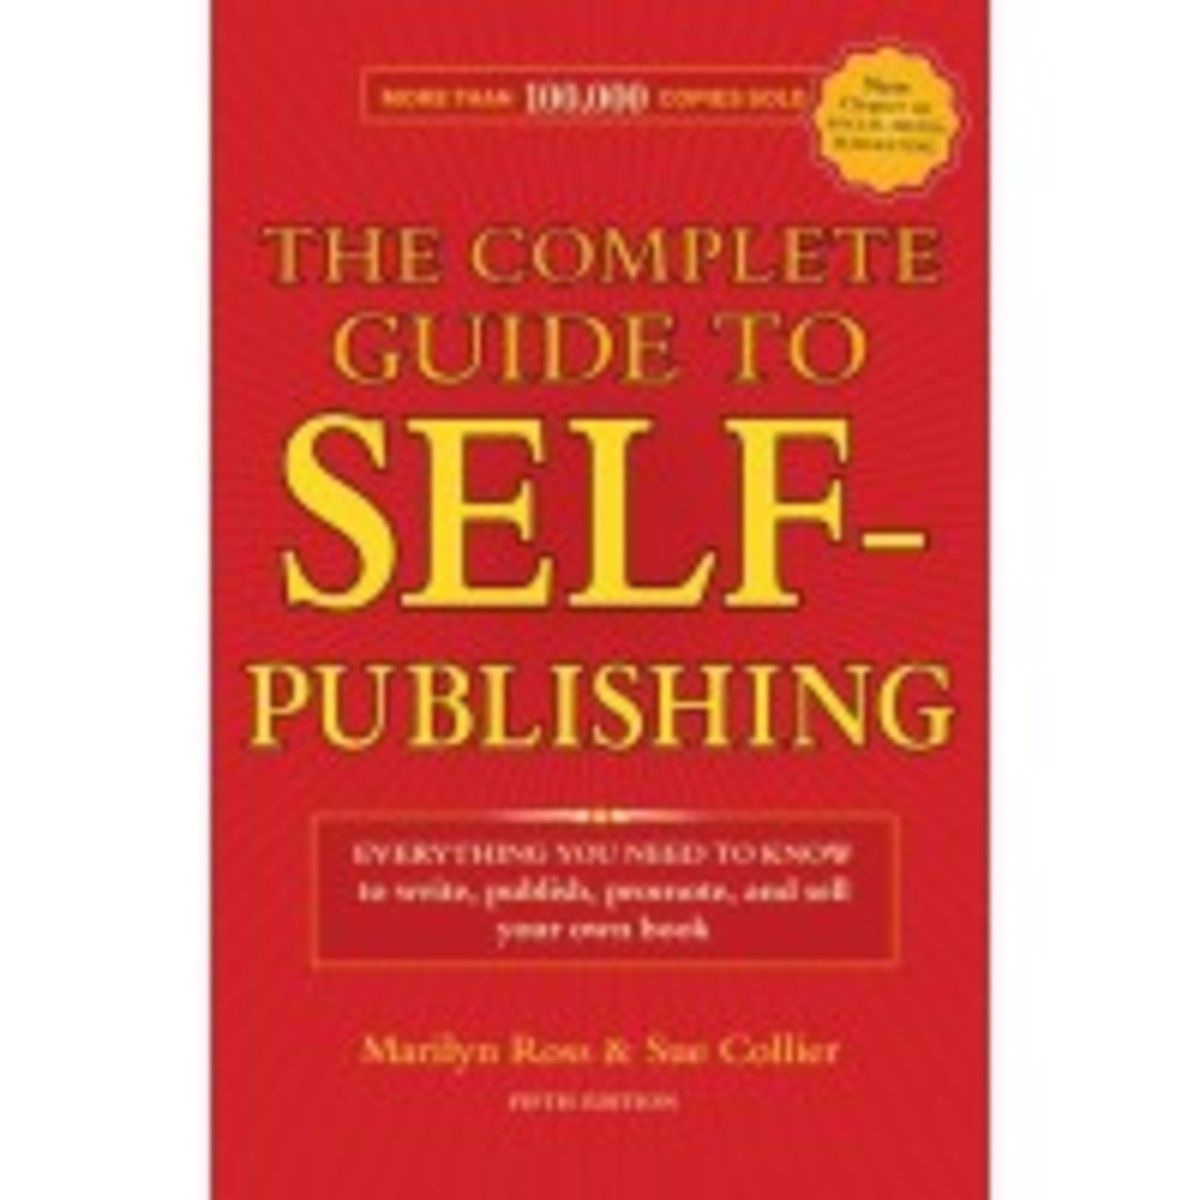 The Complete Guide to Self-Publishing, 5th Edition